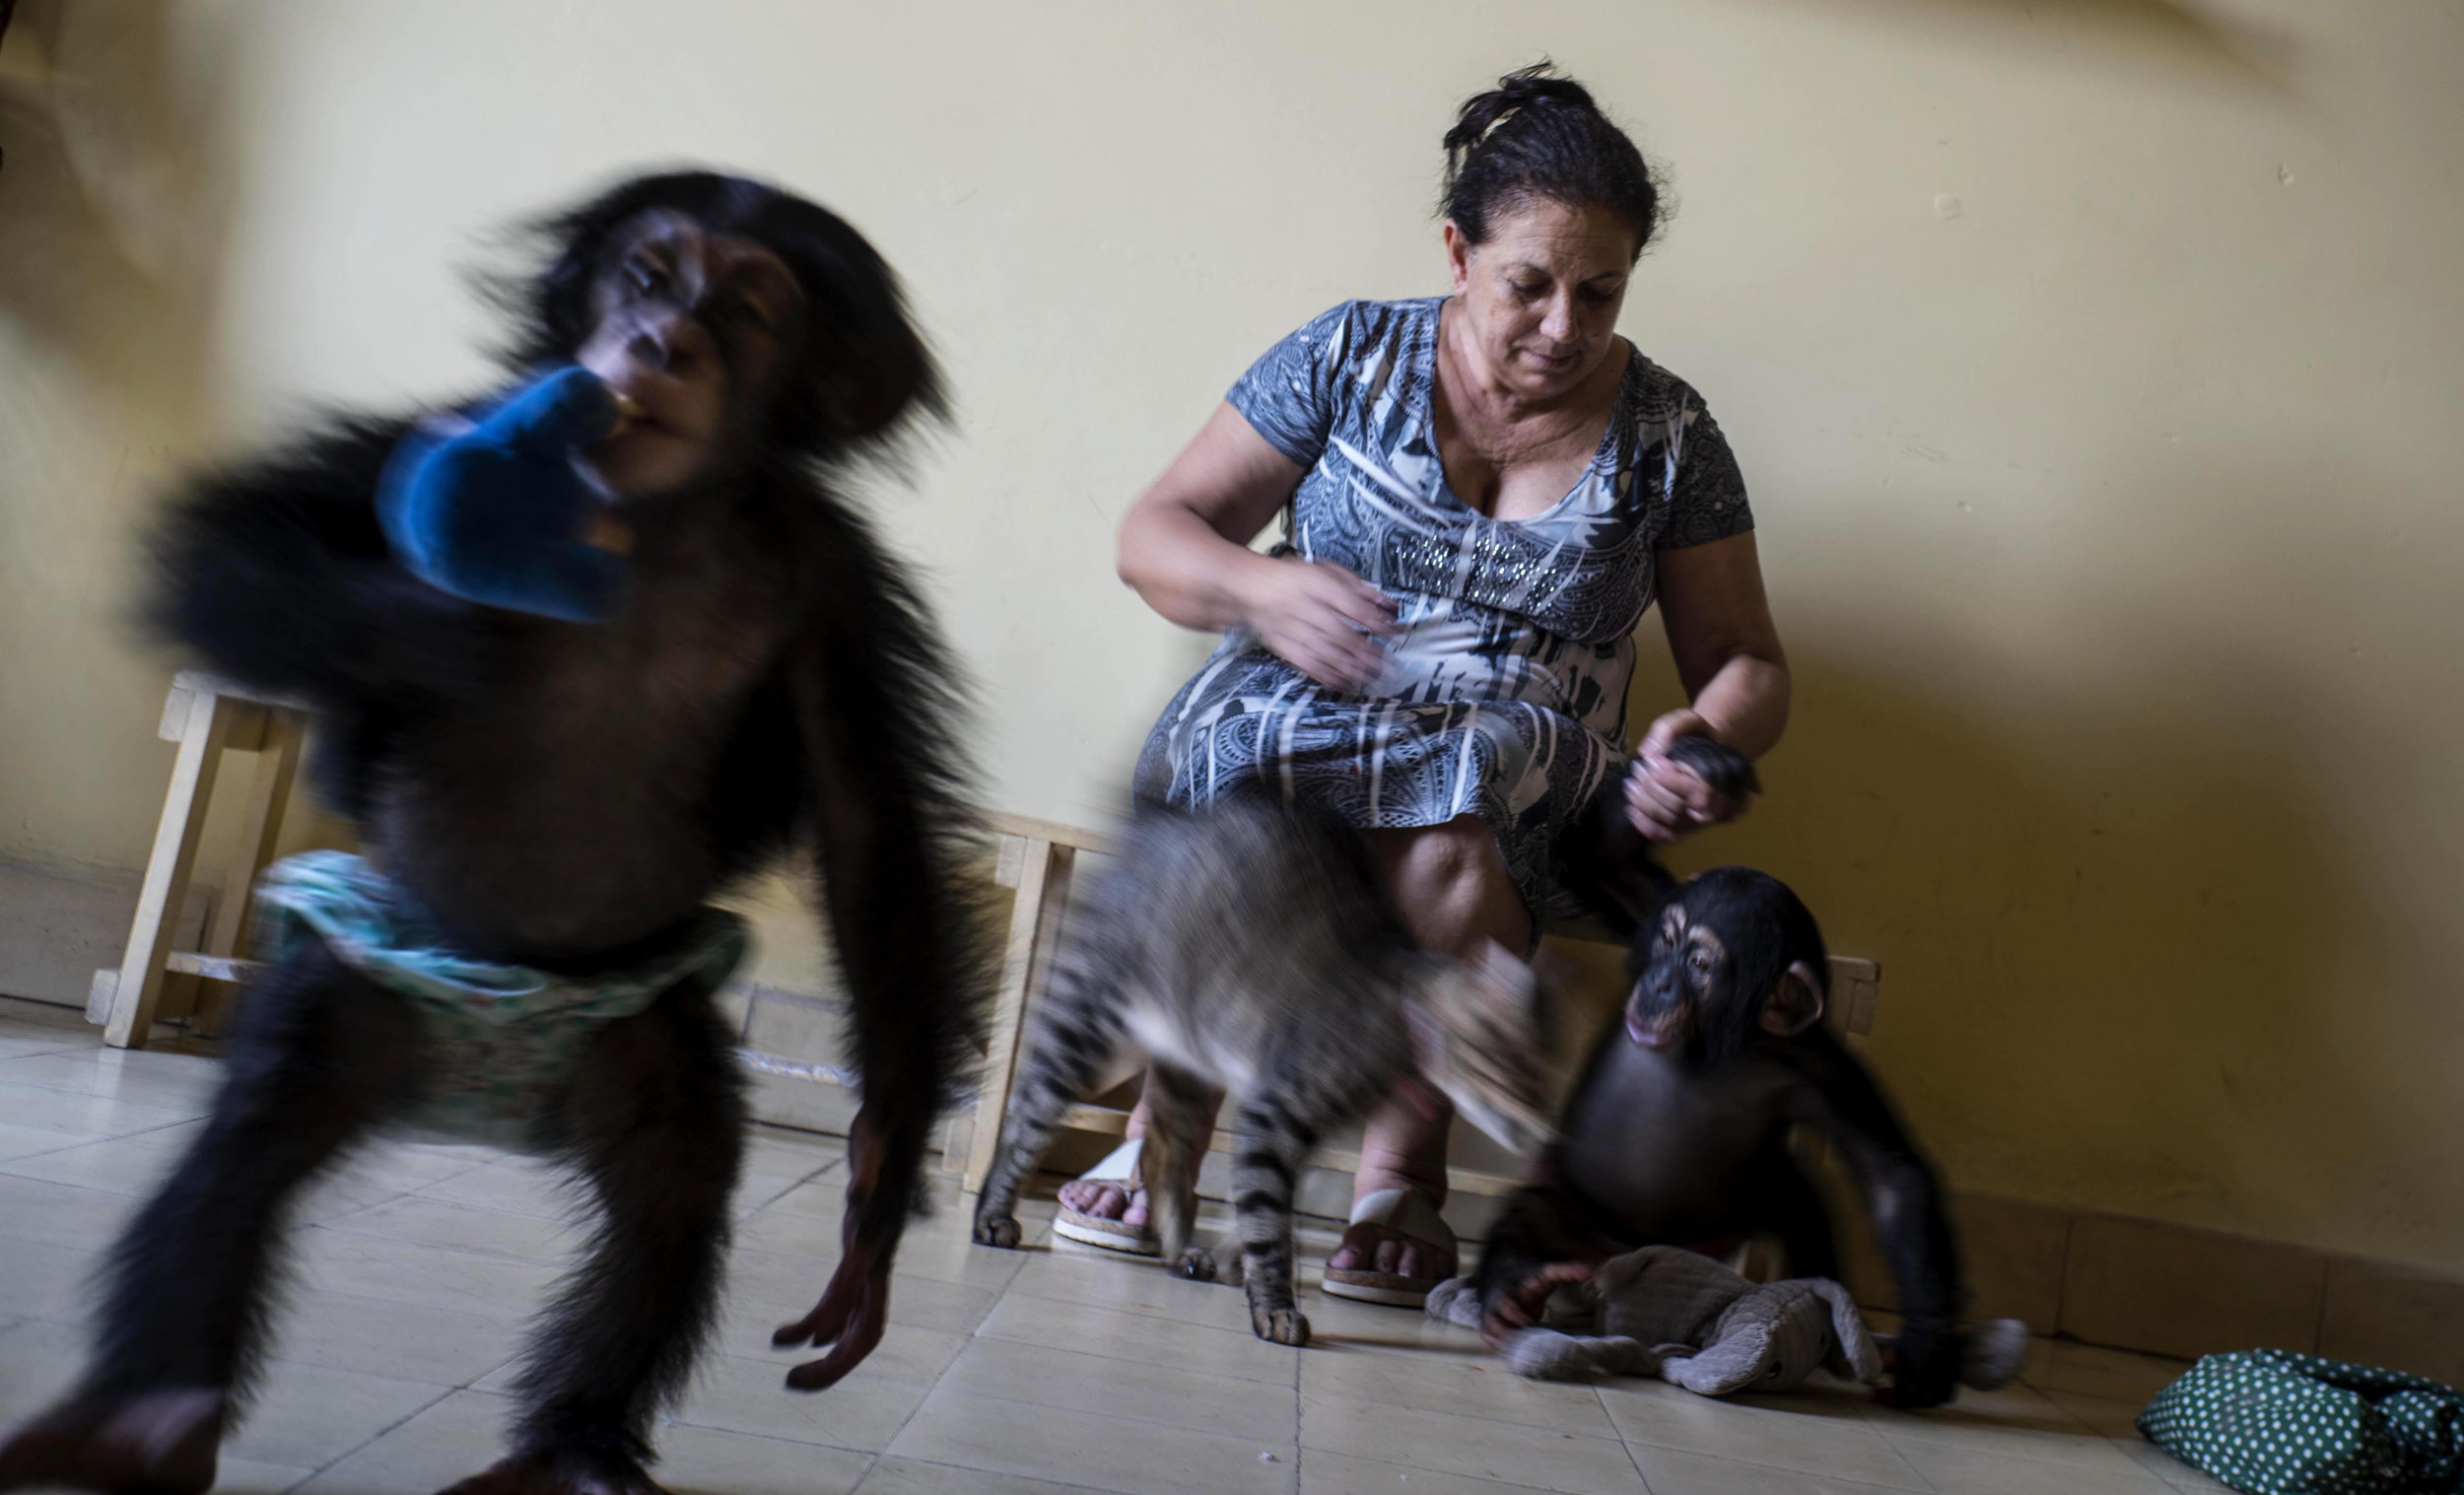 In this April 4, 2017 photo, zoologist Marta Llanes caresses baby chimpanzee Anuma II, right, while Ada plays, at Llanes' apartment in Havana, Cuba. She leaves her home a few hours each week when another zoologist delivers milk, fruit and cleaning products, and cares for the animals while Llanes takes a break. (AP Photo/Ramon Espinosa)